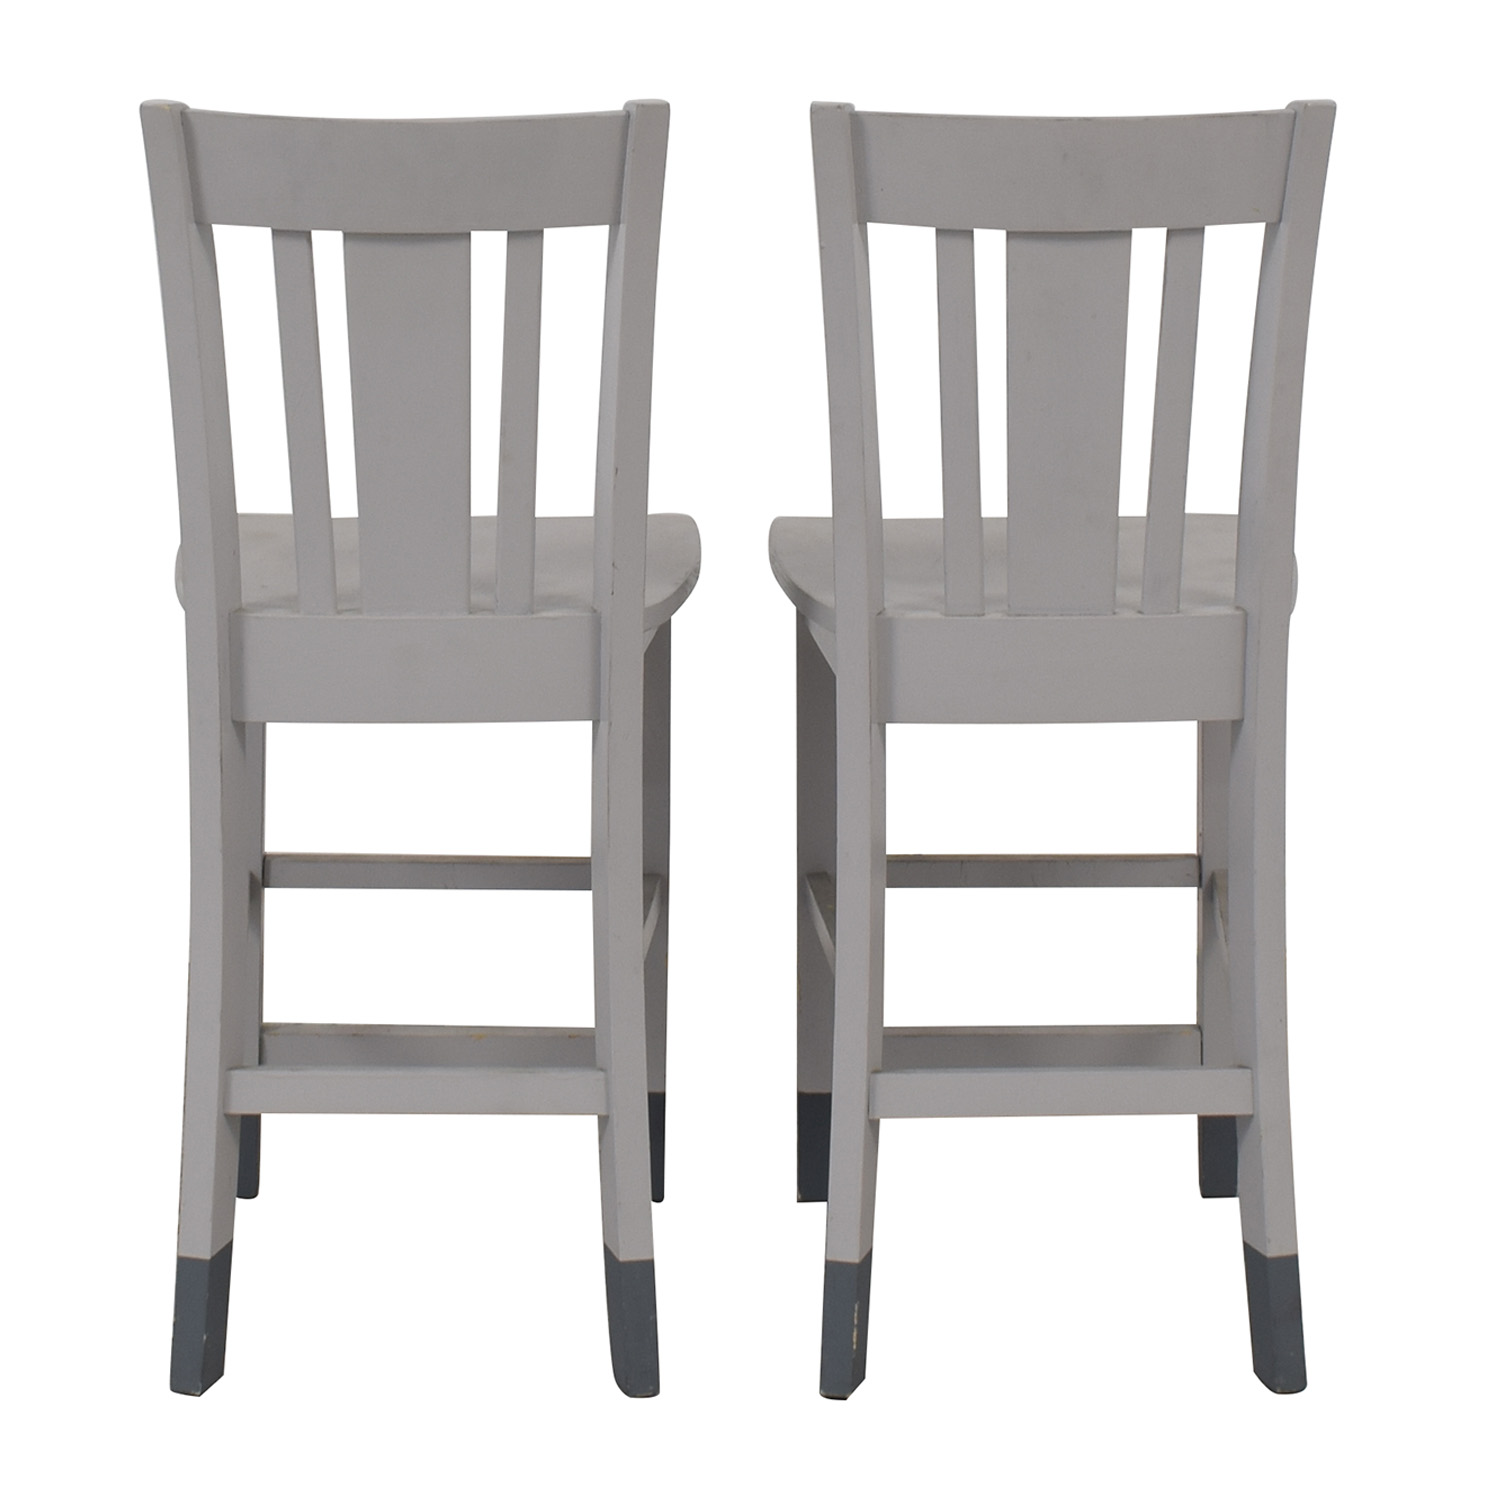 Grey Wood Counter-Height Chairs used